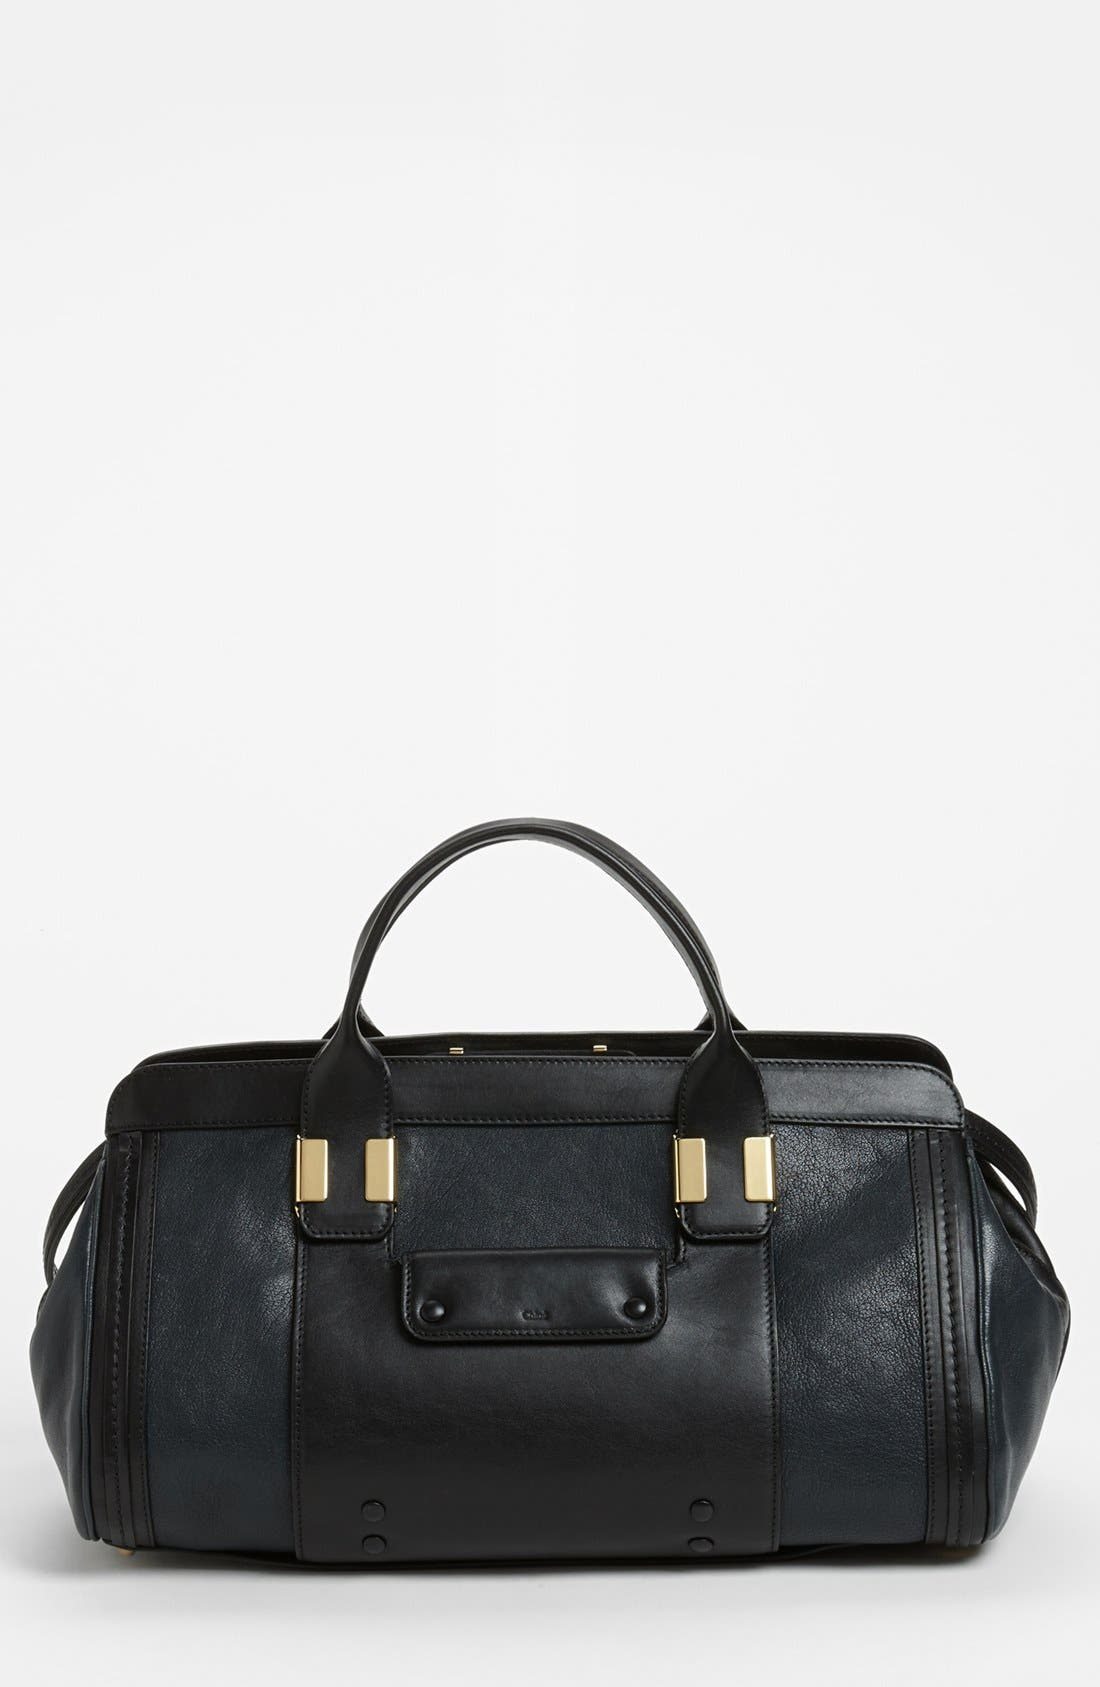 Main Image - Chloé 'Alice - Small' Leather Satchel